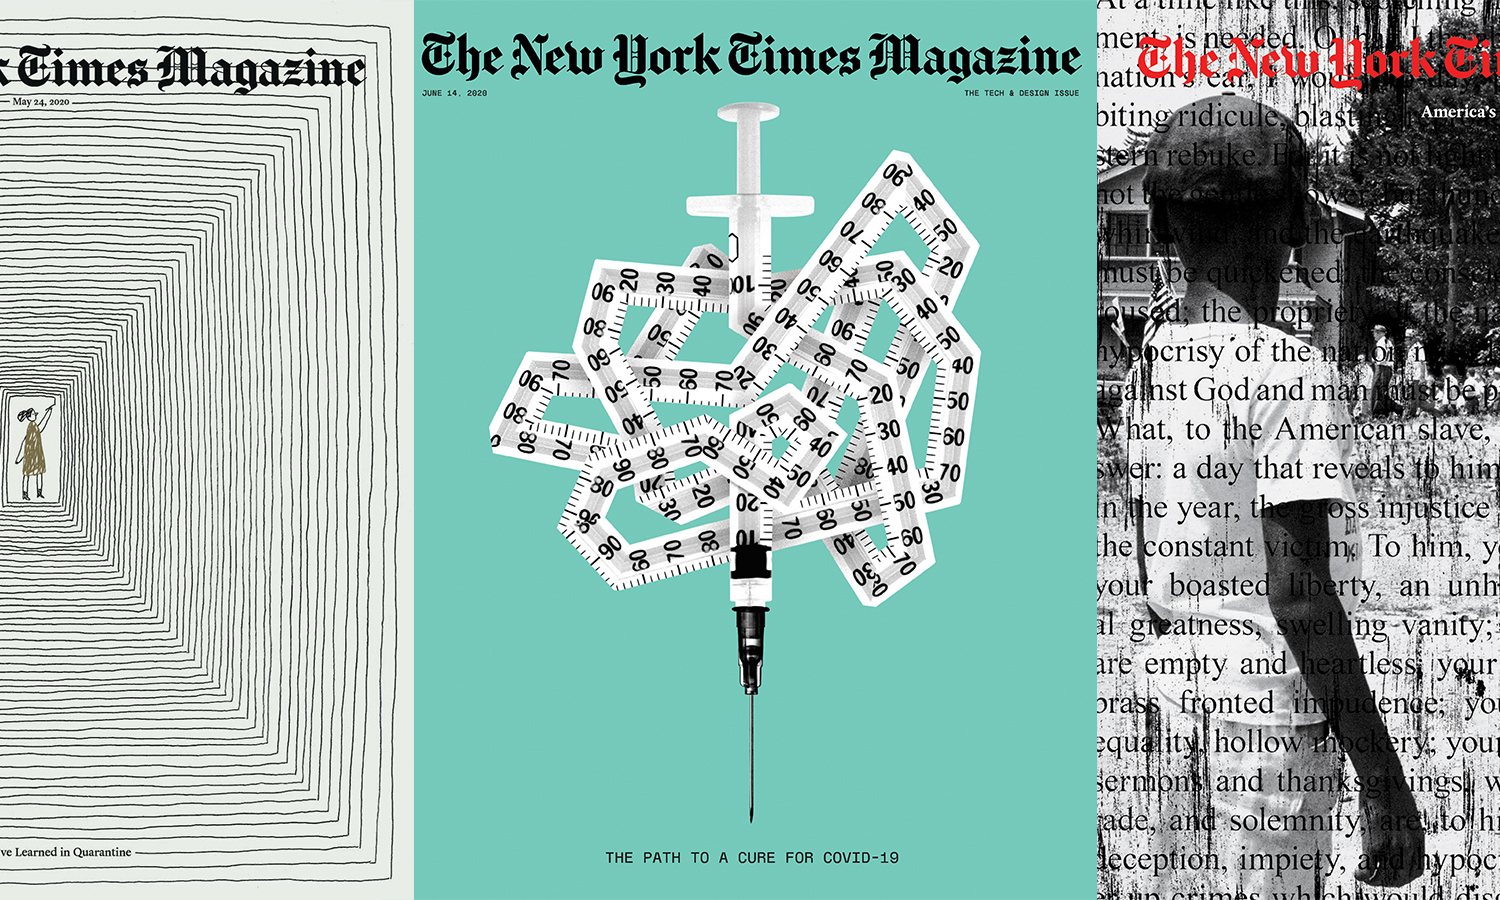 Thumbnail for 60 Powerful New York Times Magazine Covers That Tell the Story of 2020 and Beyond